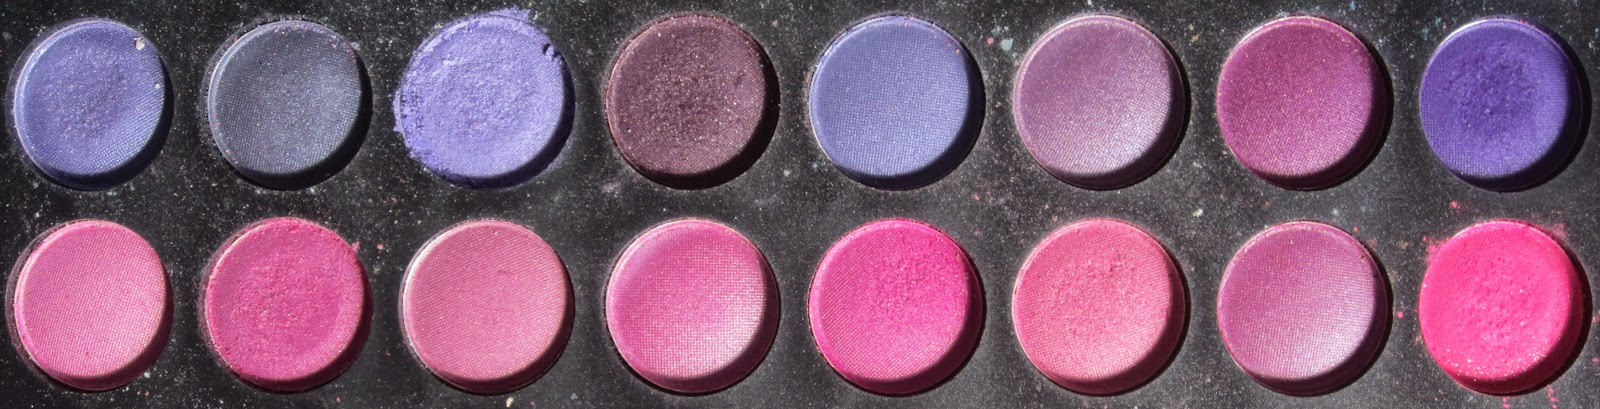 radiant orchid palette